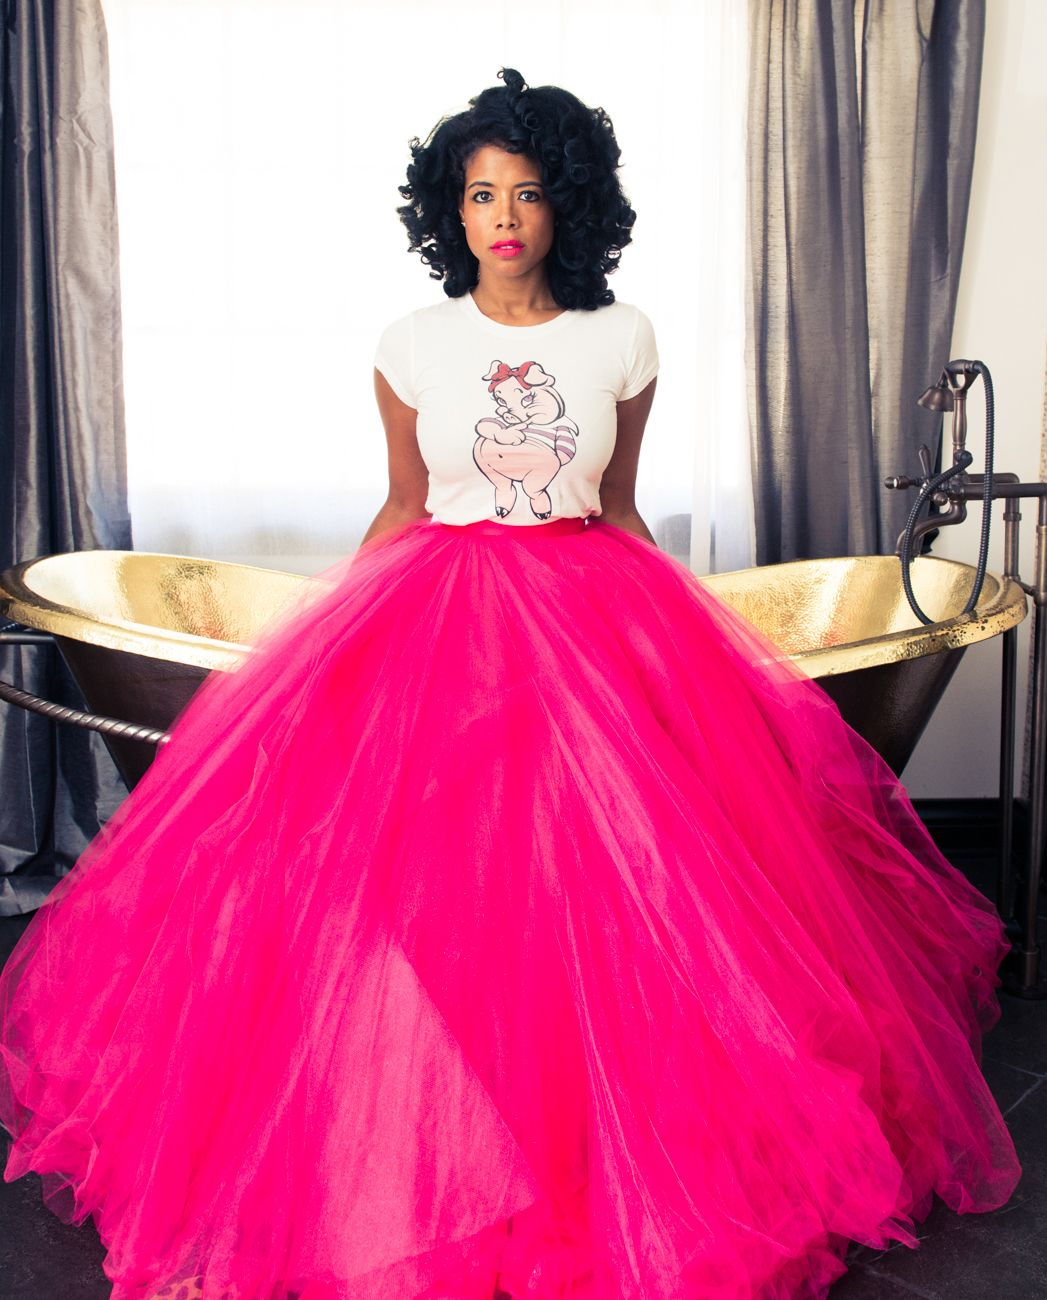 Kelis | Pink tulle, Tulle skirts and Tutu